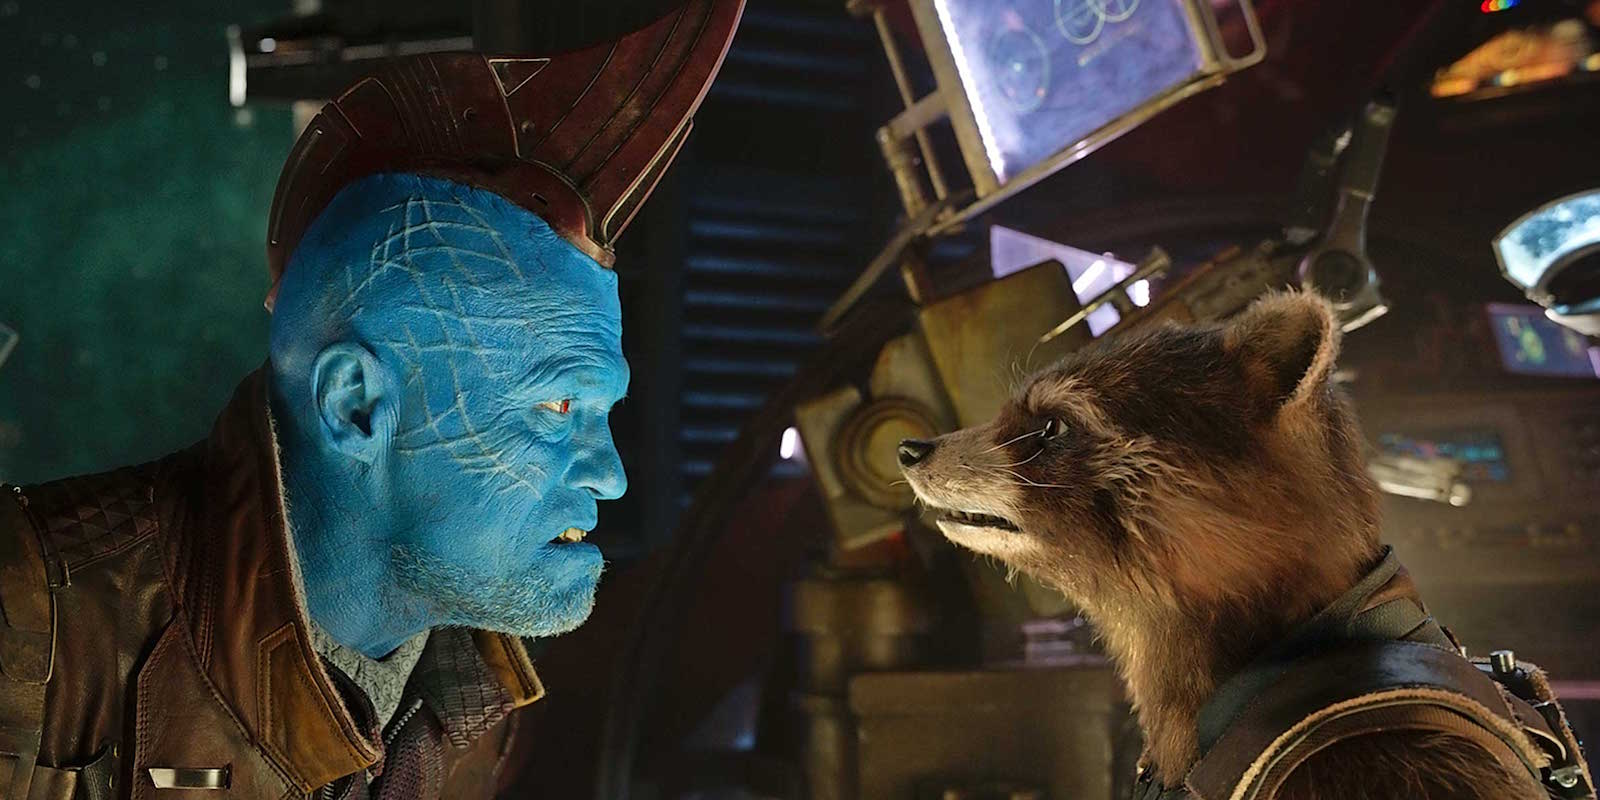 Get The Yondu Look Tribute Event Celebrating Guardians of the Galaxy Vol. 2 on Blu-Ray and MEET Michael Rooker!